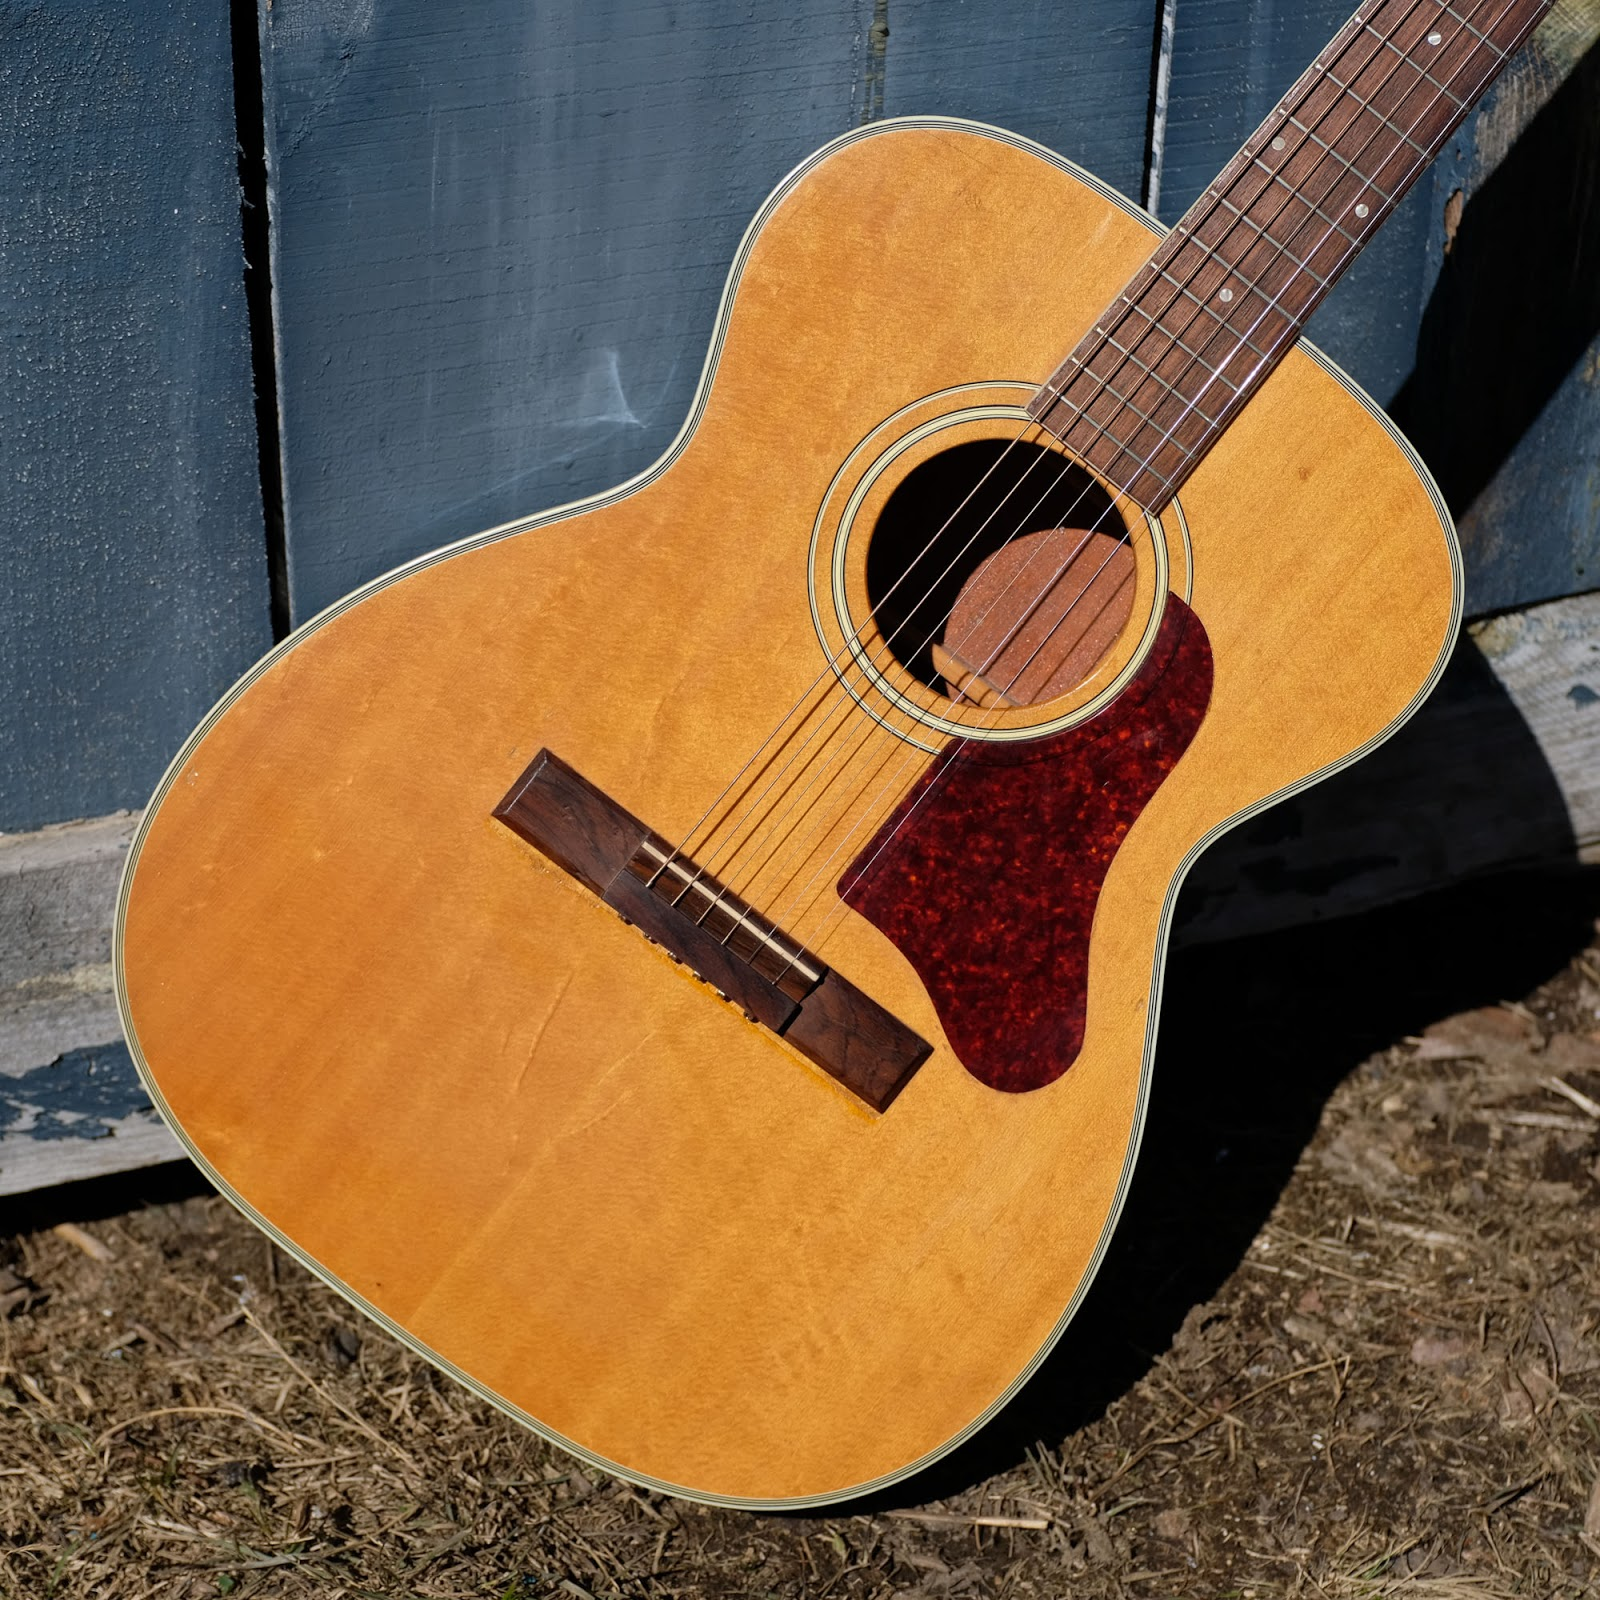 Jake Wildwood 1960s Harmony H1203 Sovereign 000 Size Flattop Guitar